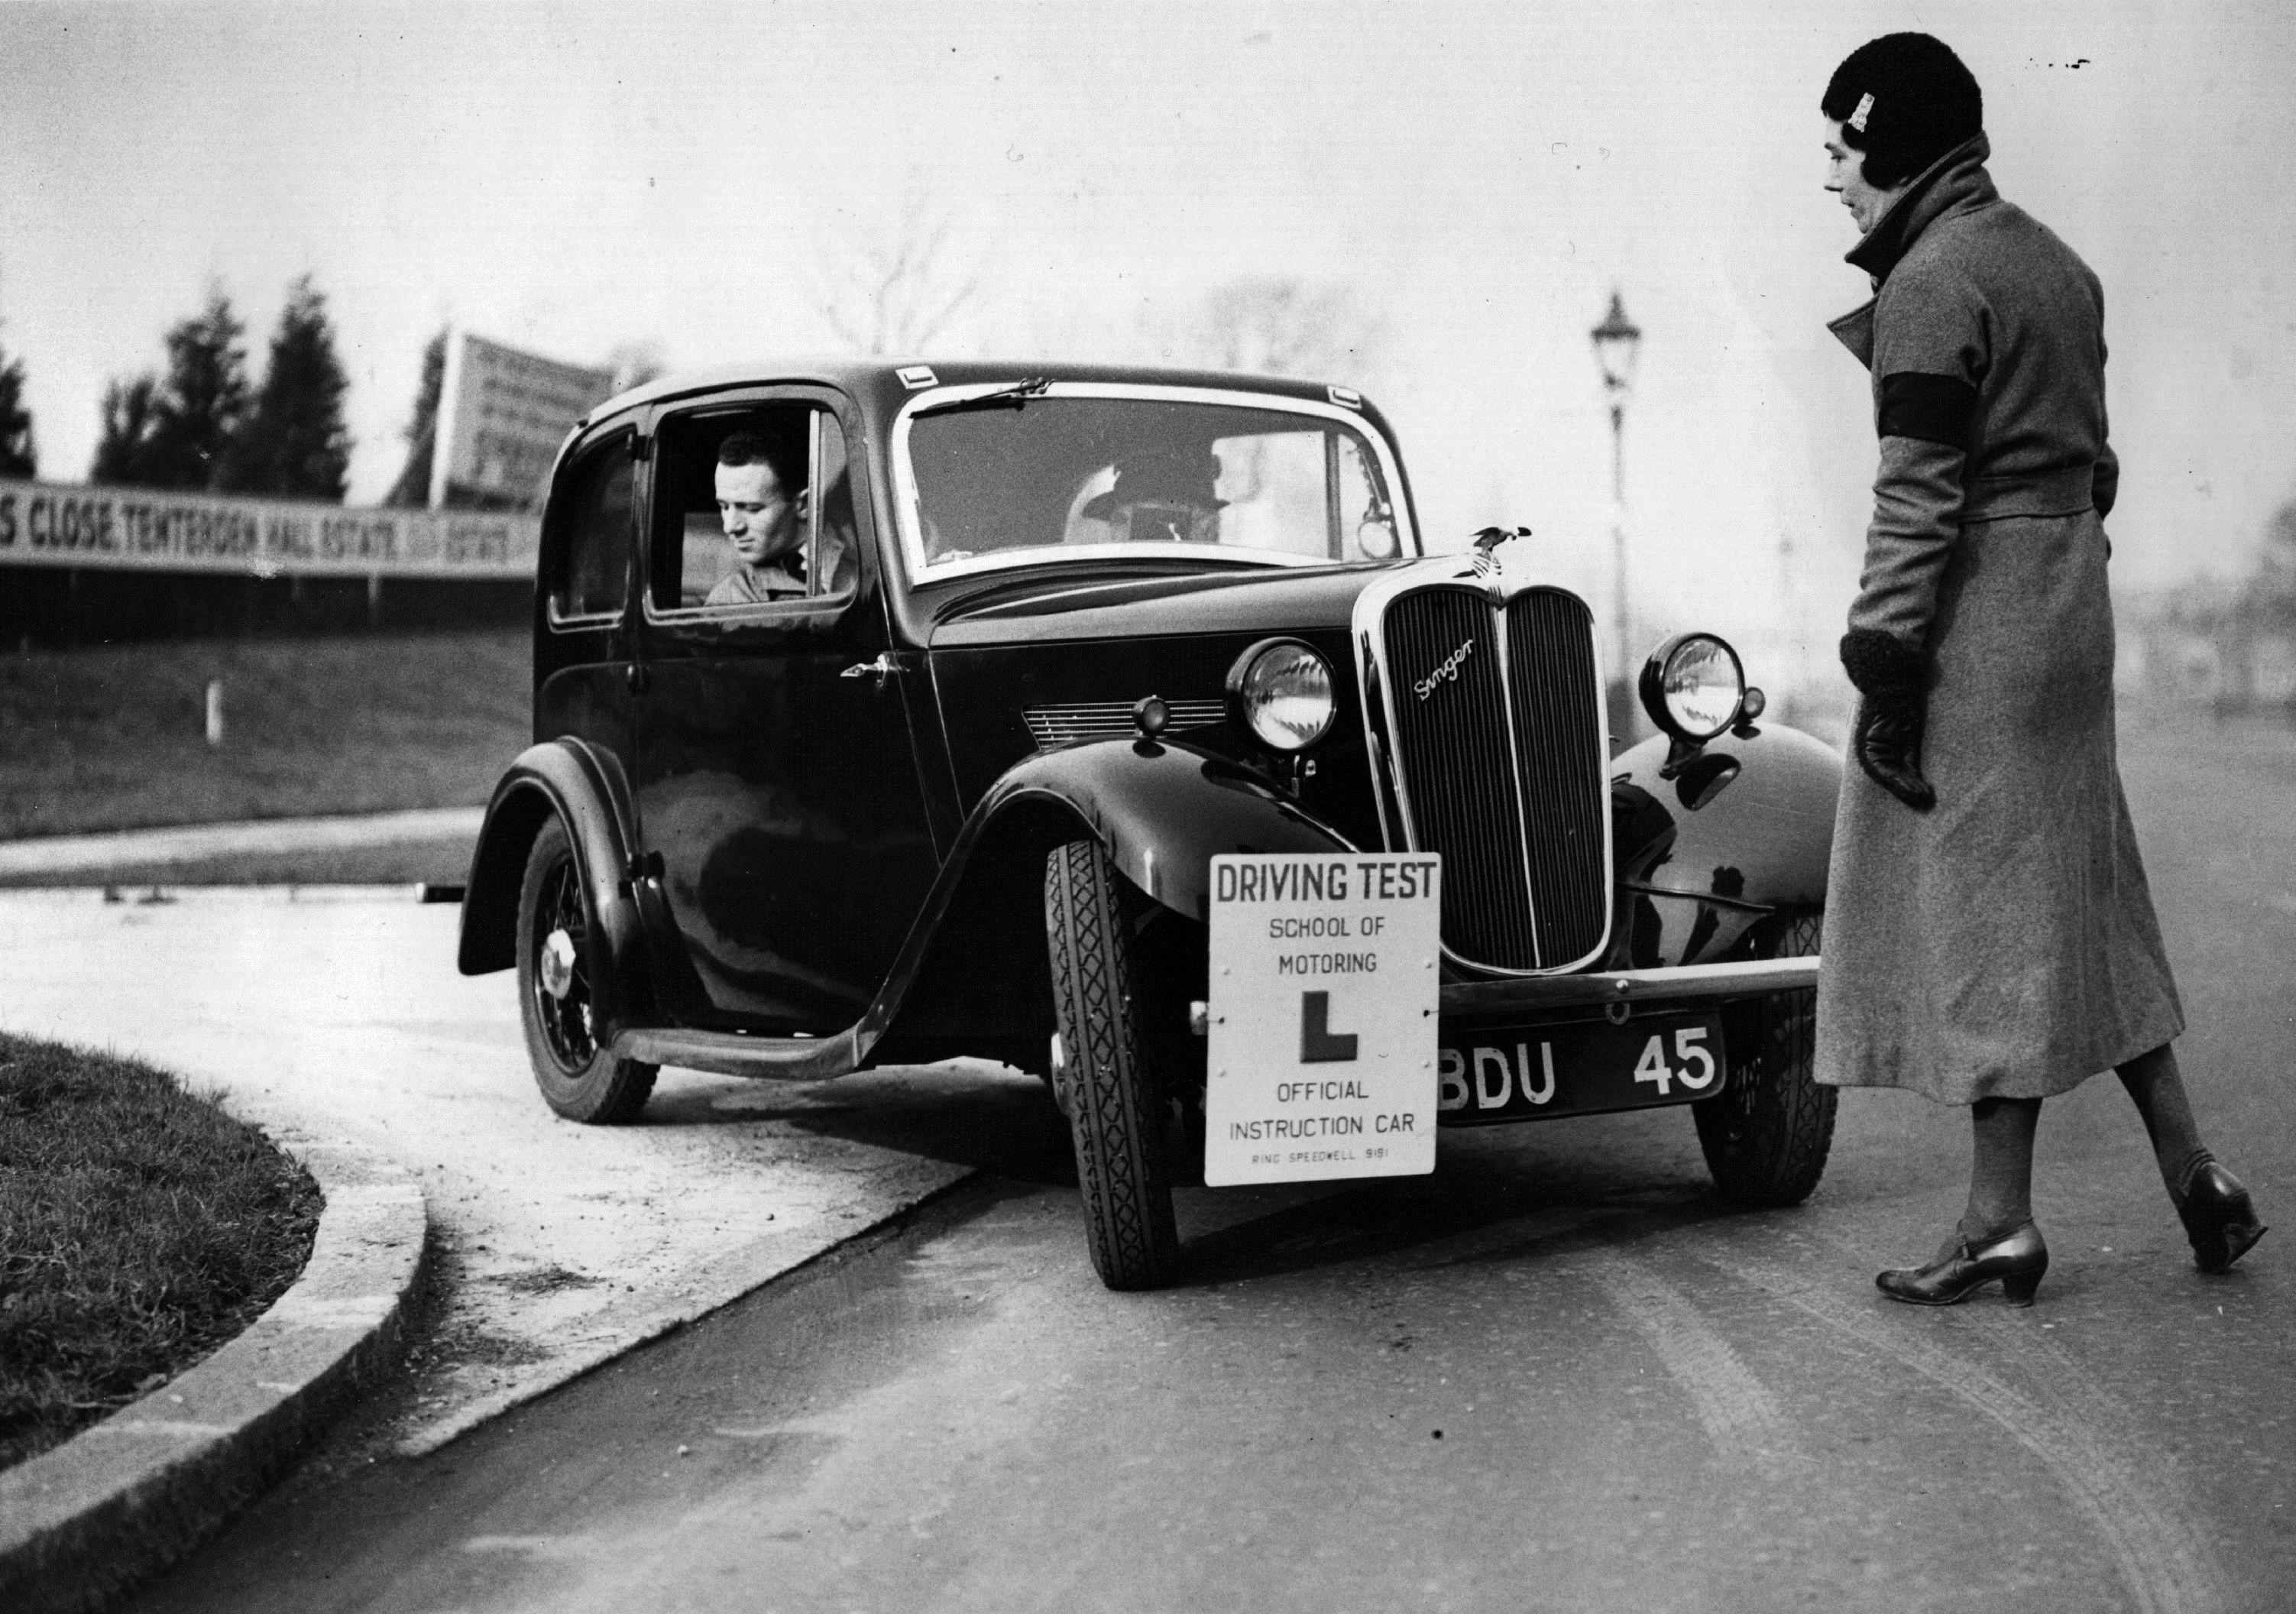 Driving instructor Miss Victoria Worsley instructs one of her pupils to reverse round a corner at her driving test school. (Fred Morley/Getty Images)